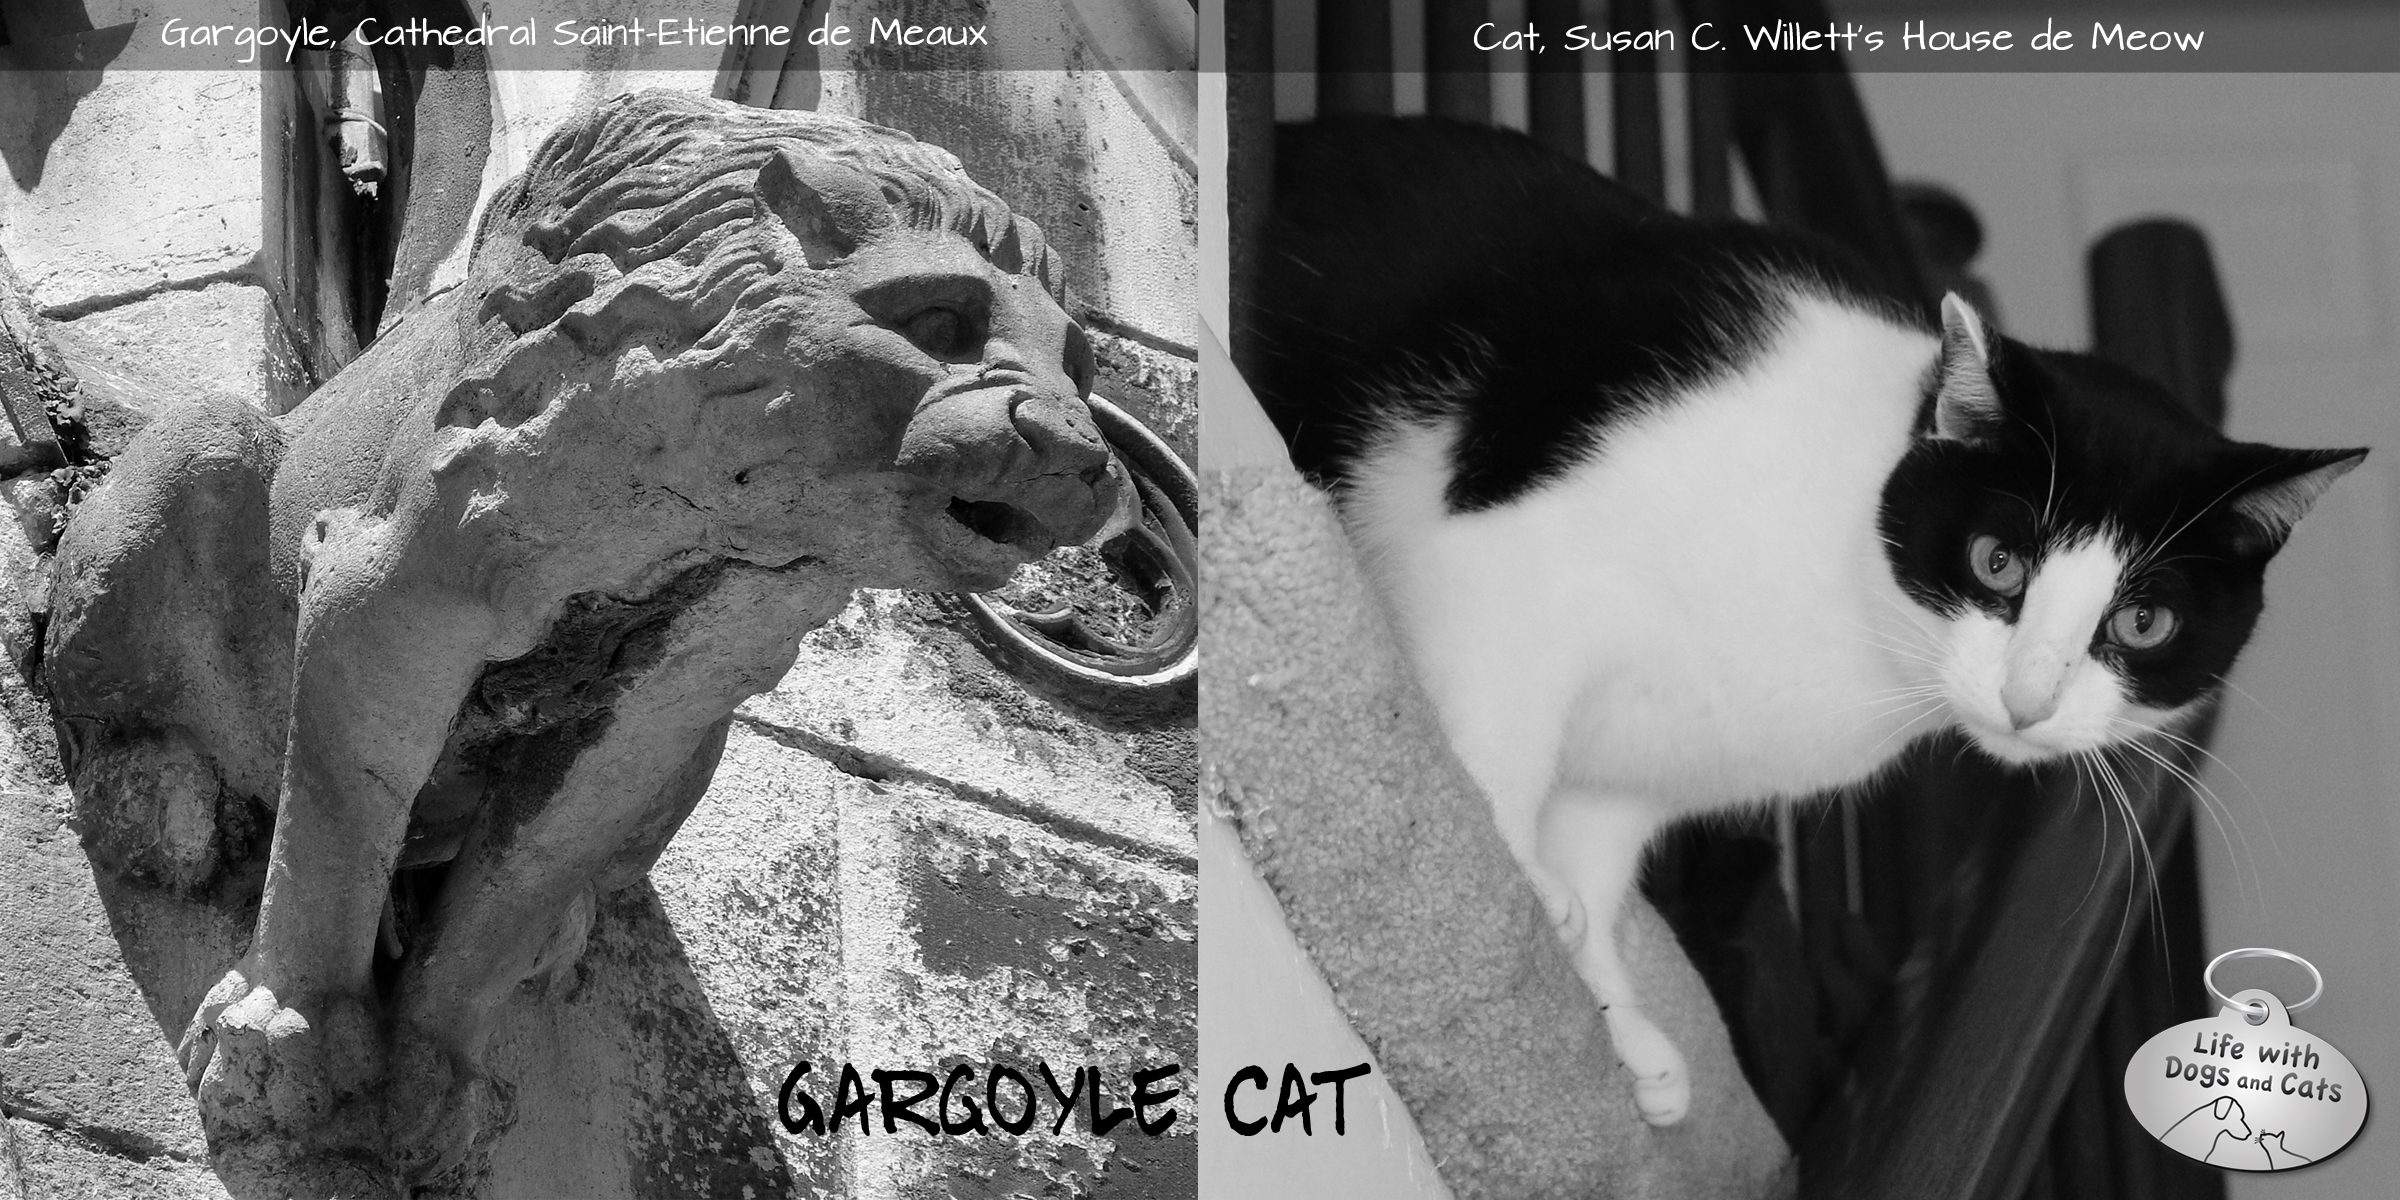 Cat imitating art gargoyle